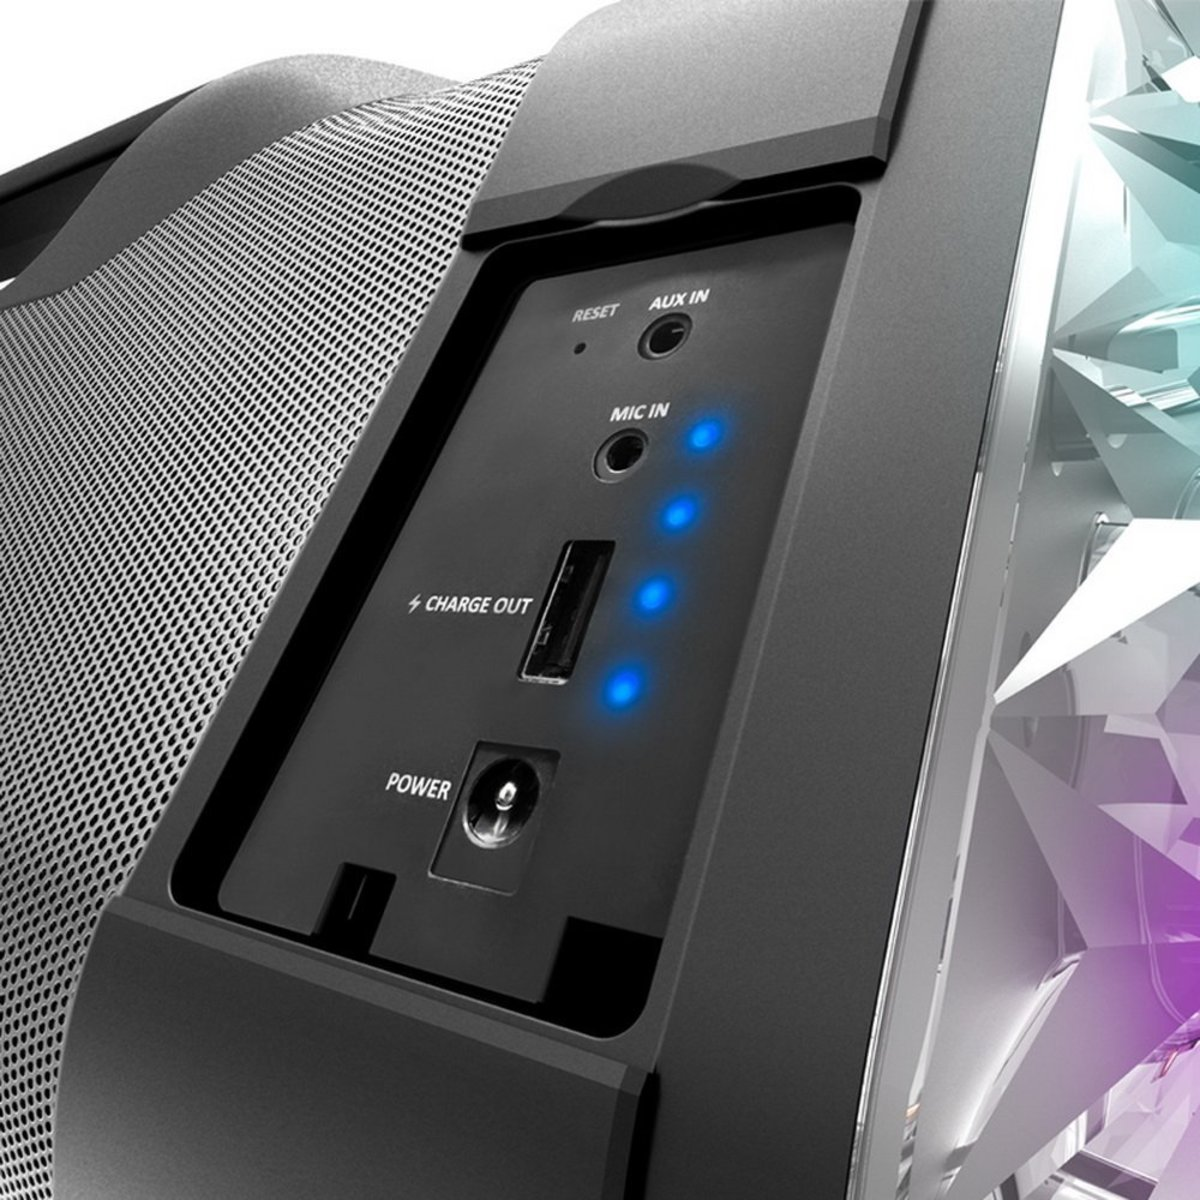 Don't want to go wireless, no problem. Want to plug in your Mic, please don't, but you can. Want to charge your phone, ipad, whatever... Ravebox has you covered.